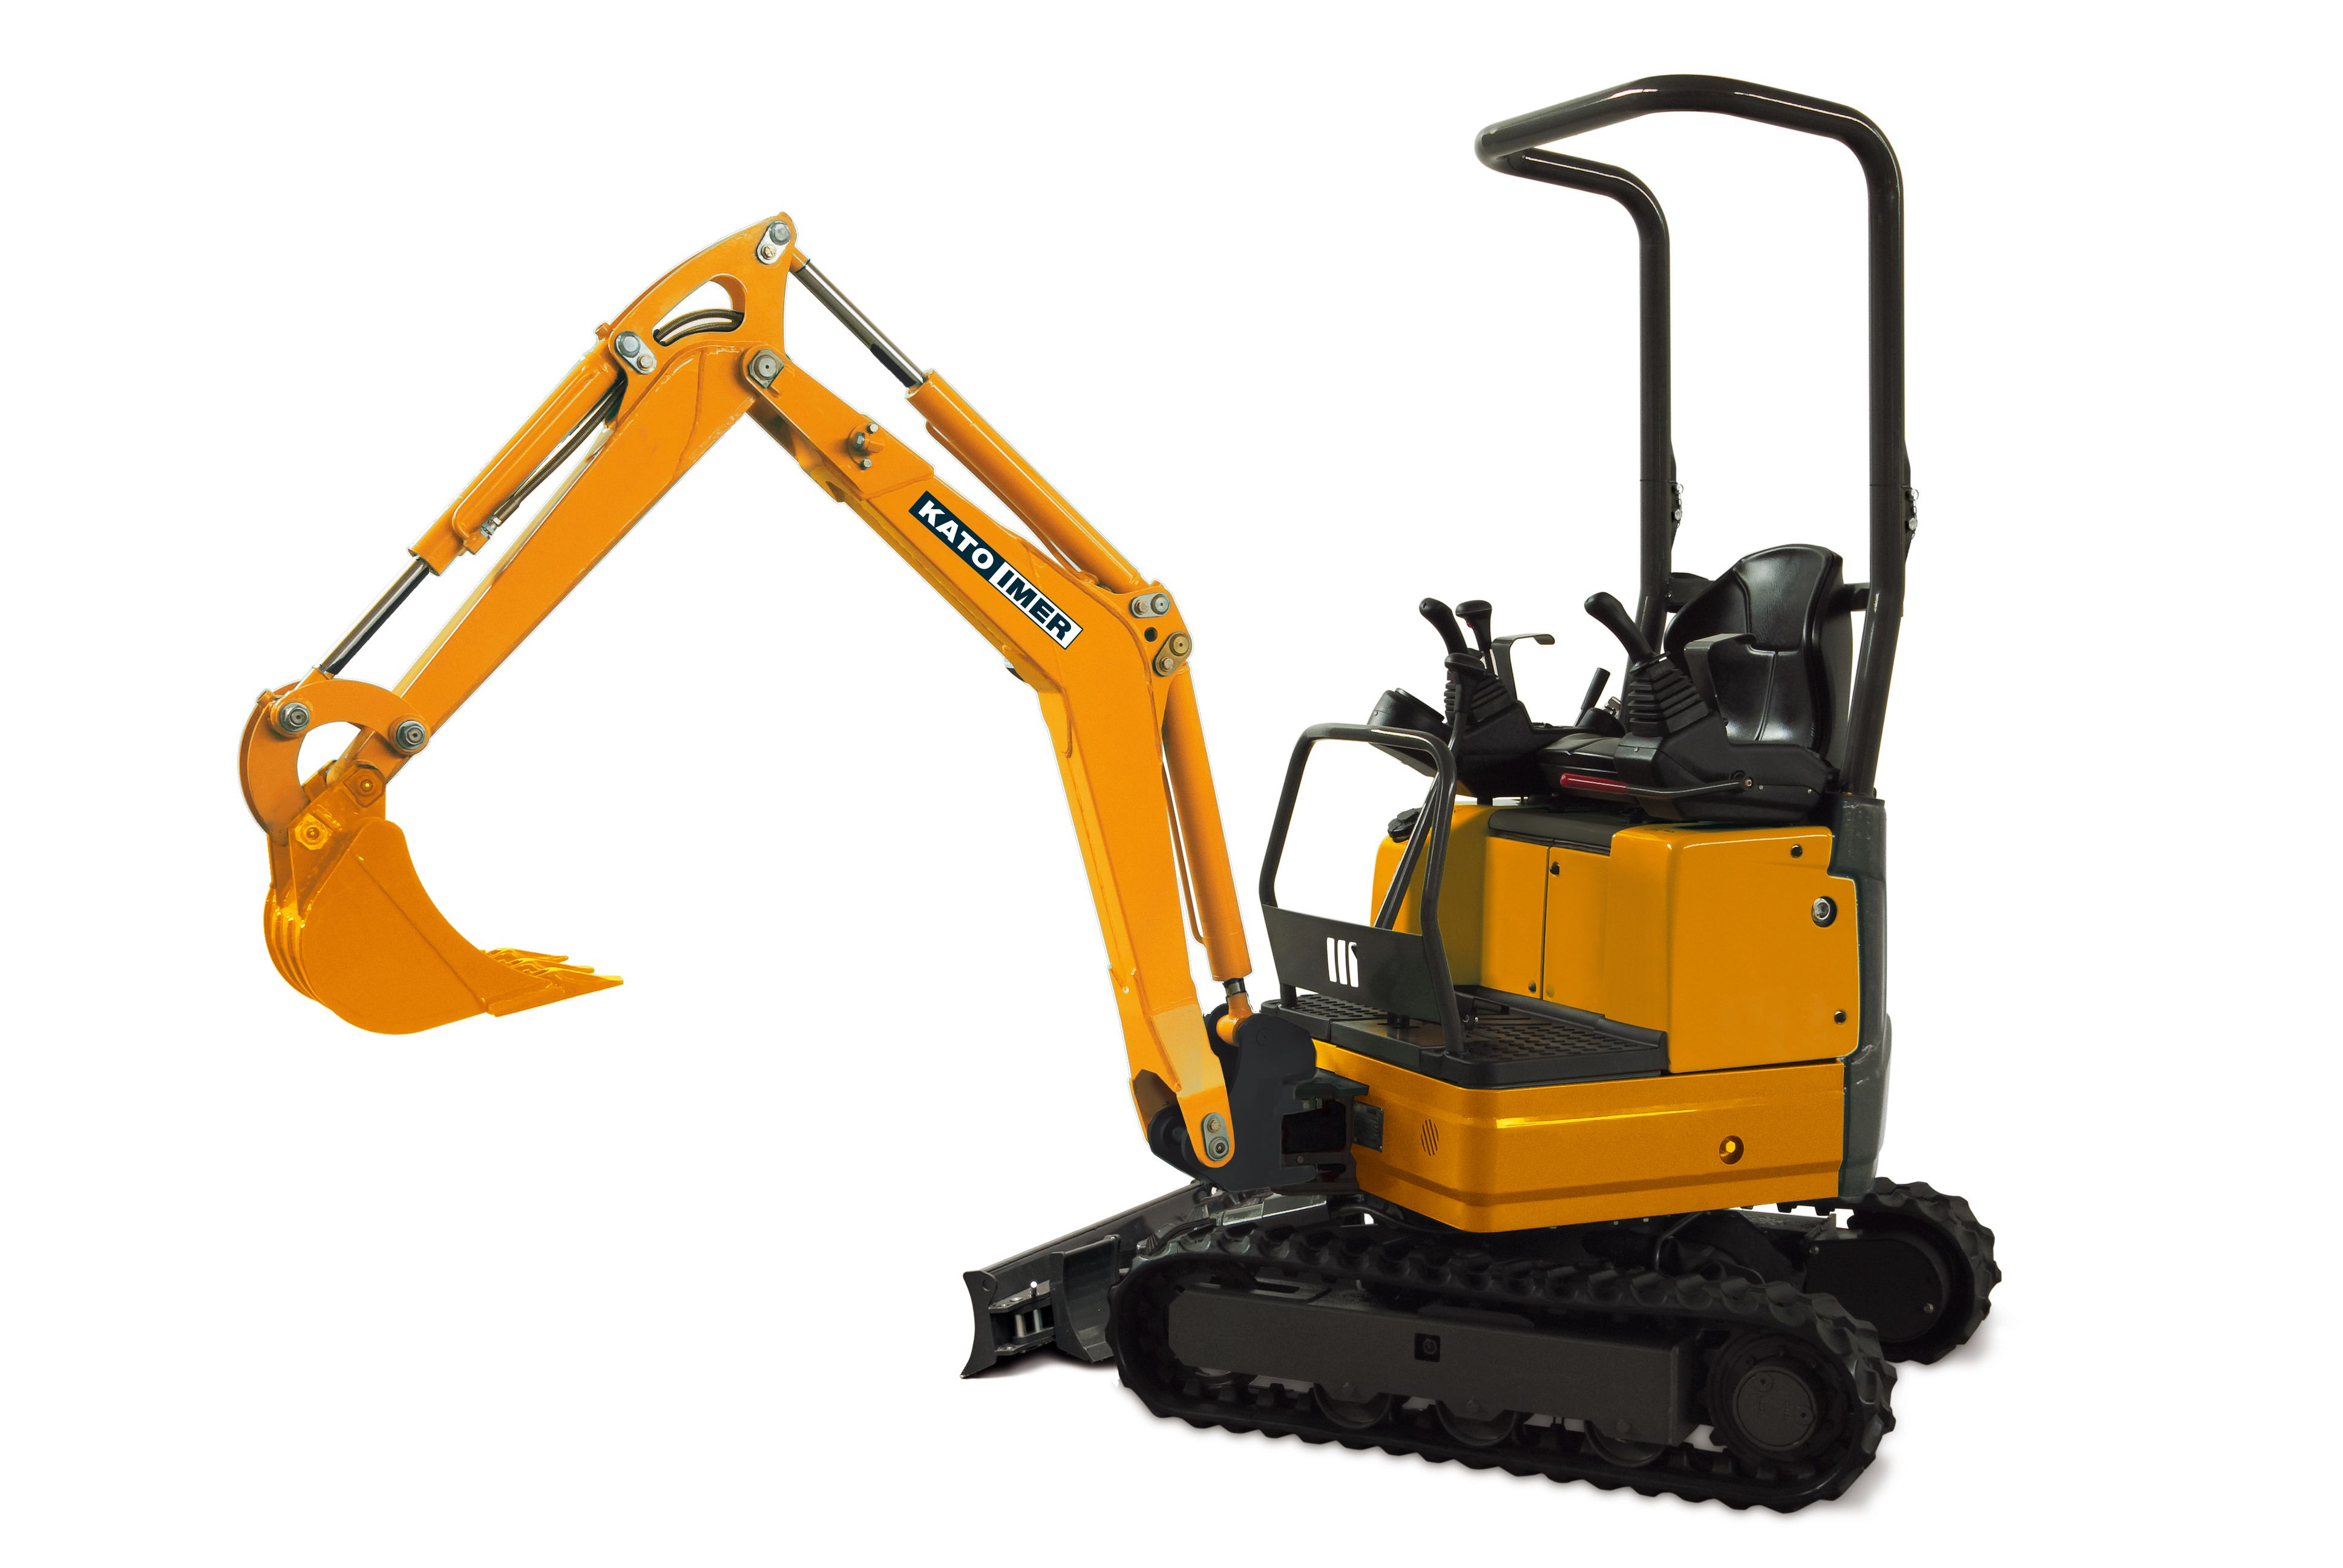 Formally Know As Ihi Mini Excavators Kato Imer Is A Japanese Wiring Schematic Excavator Manufacture With